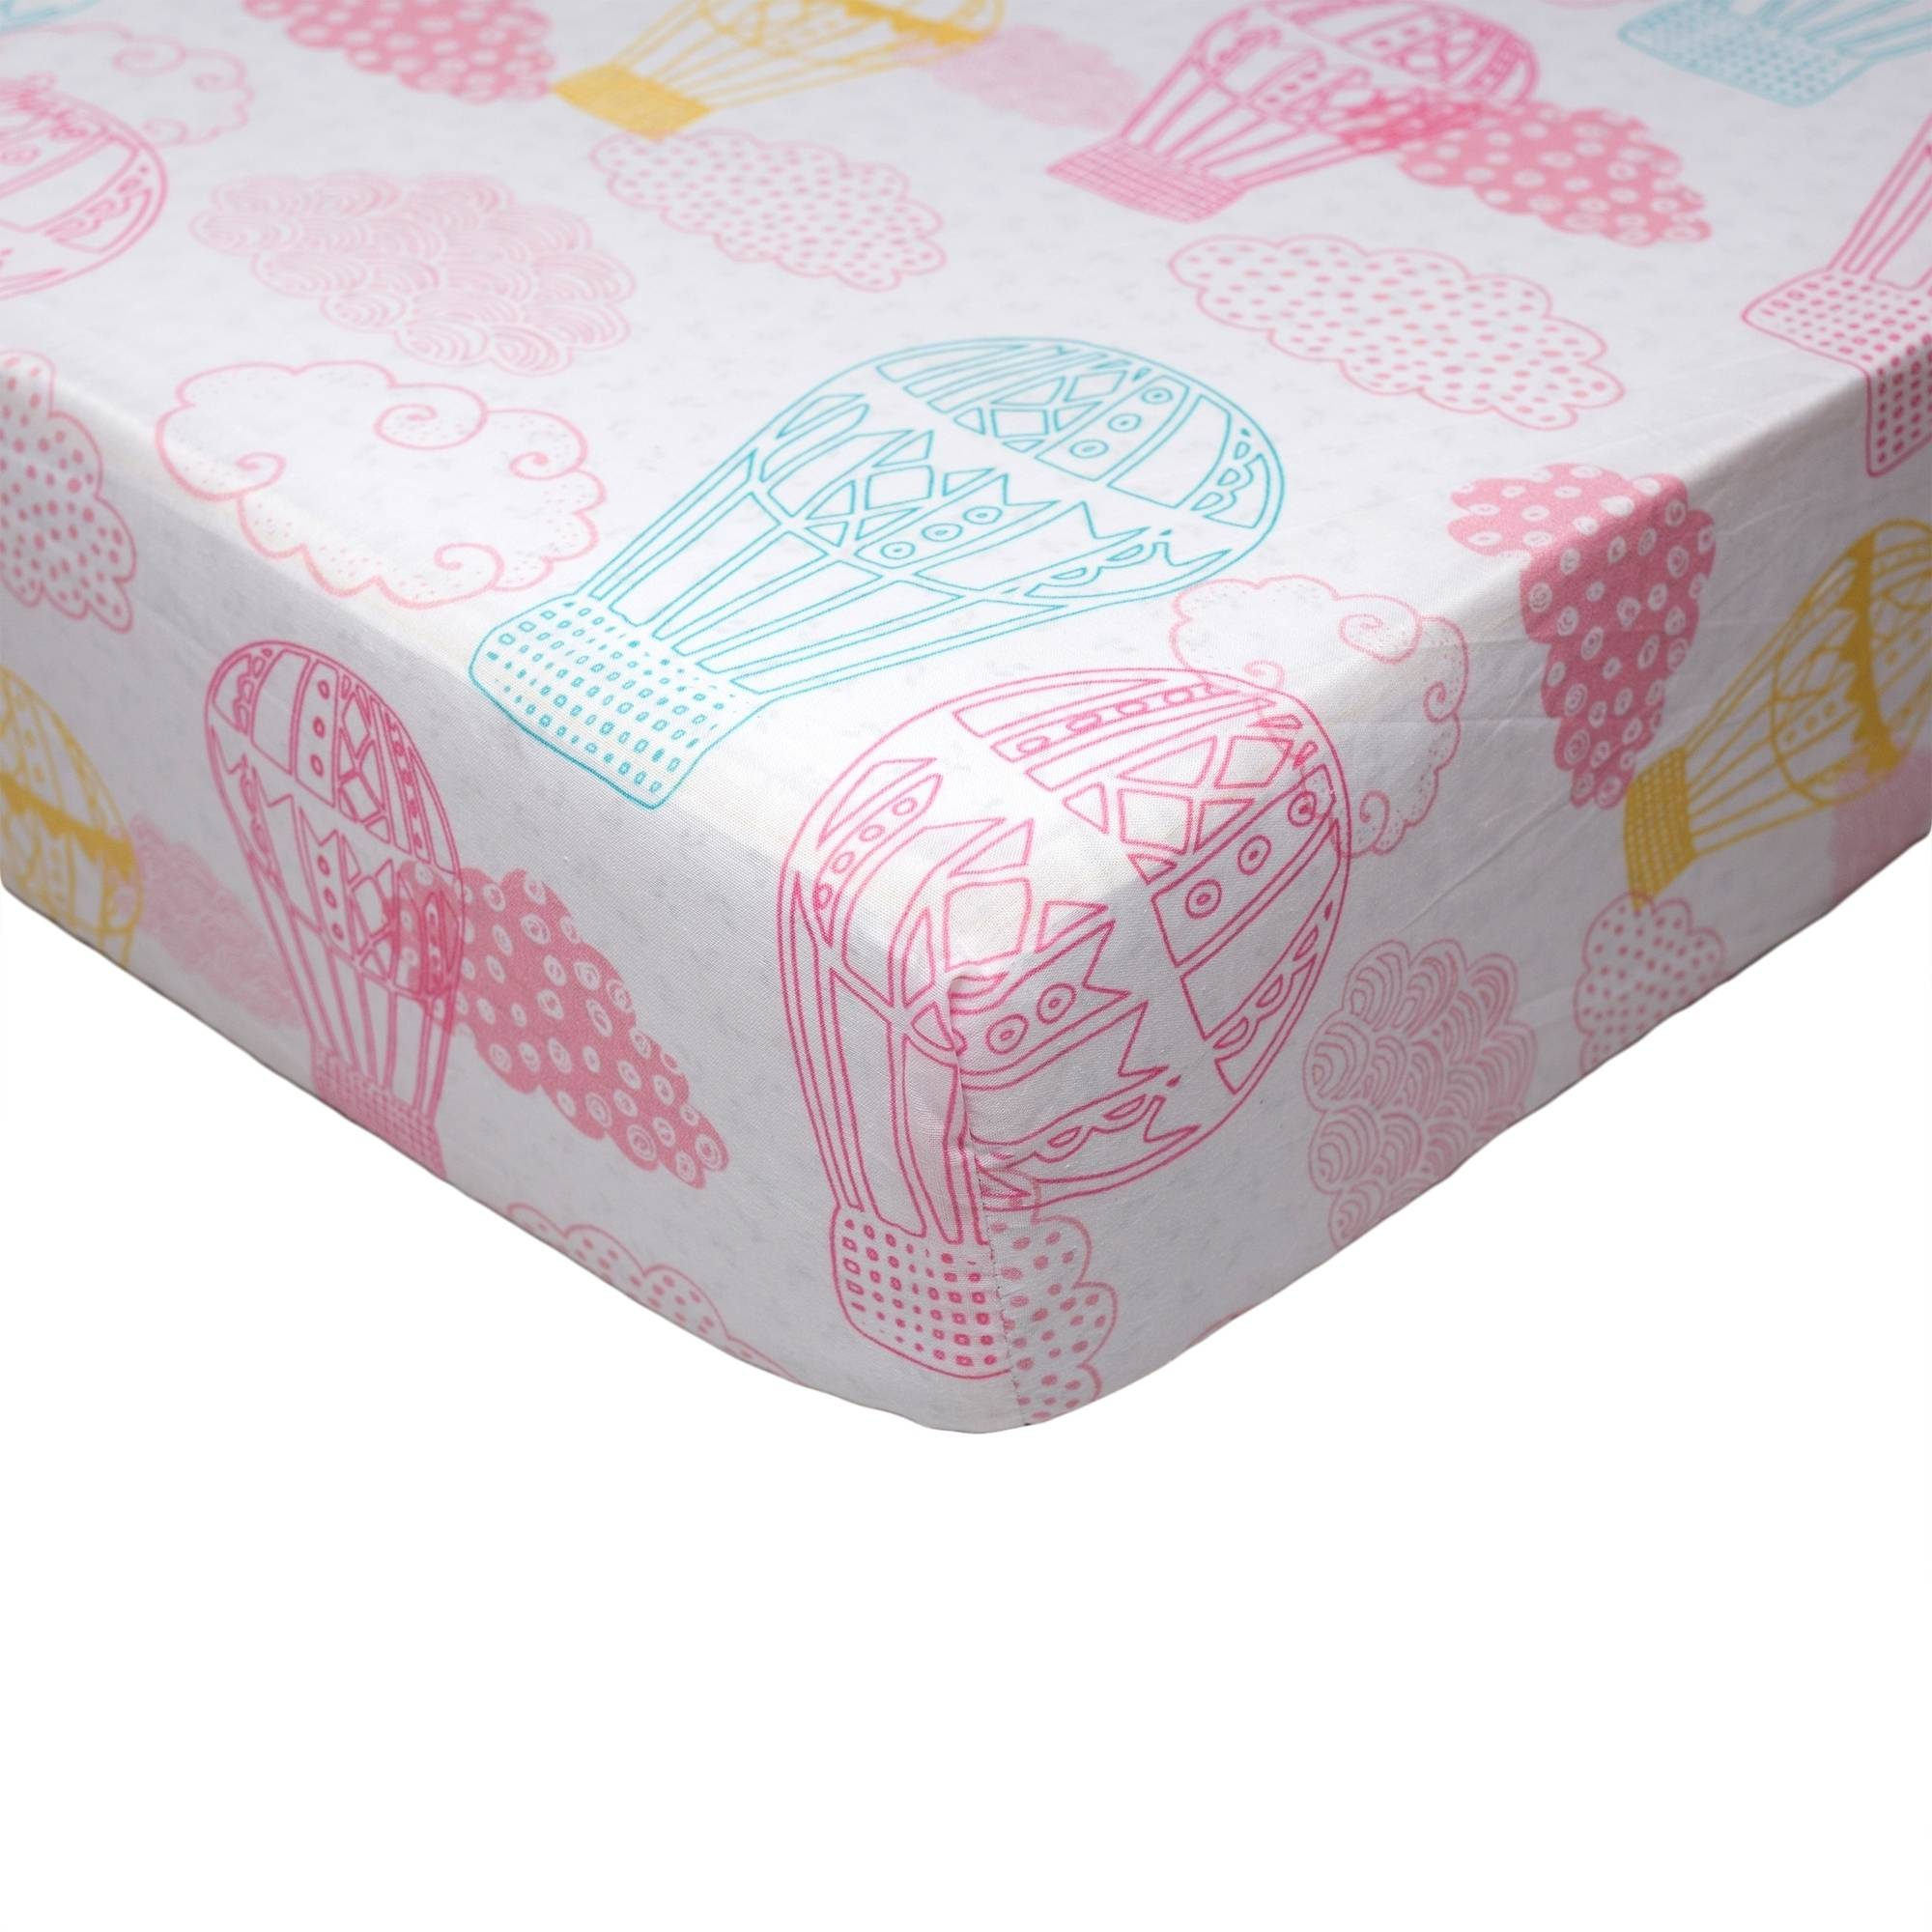 Poppi Living Dreamscape Premium Cotton Fitted Crib Sheet